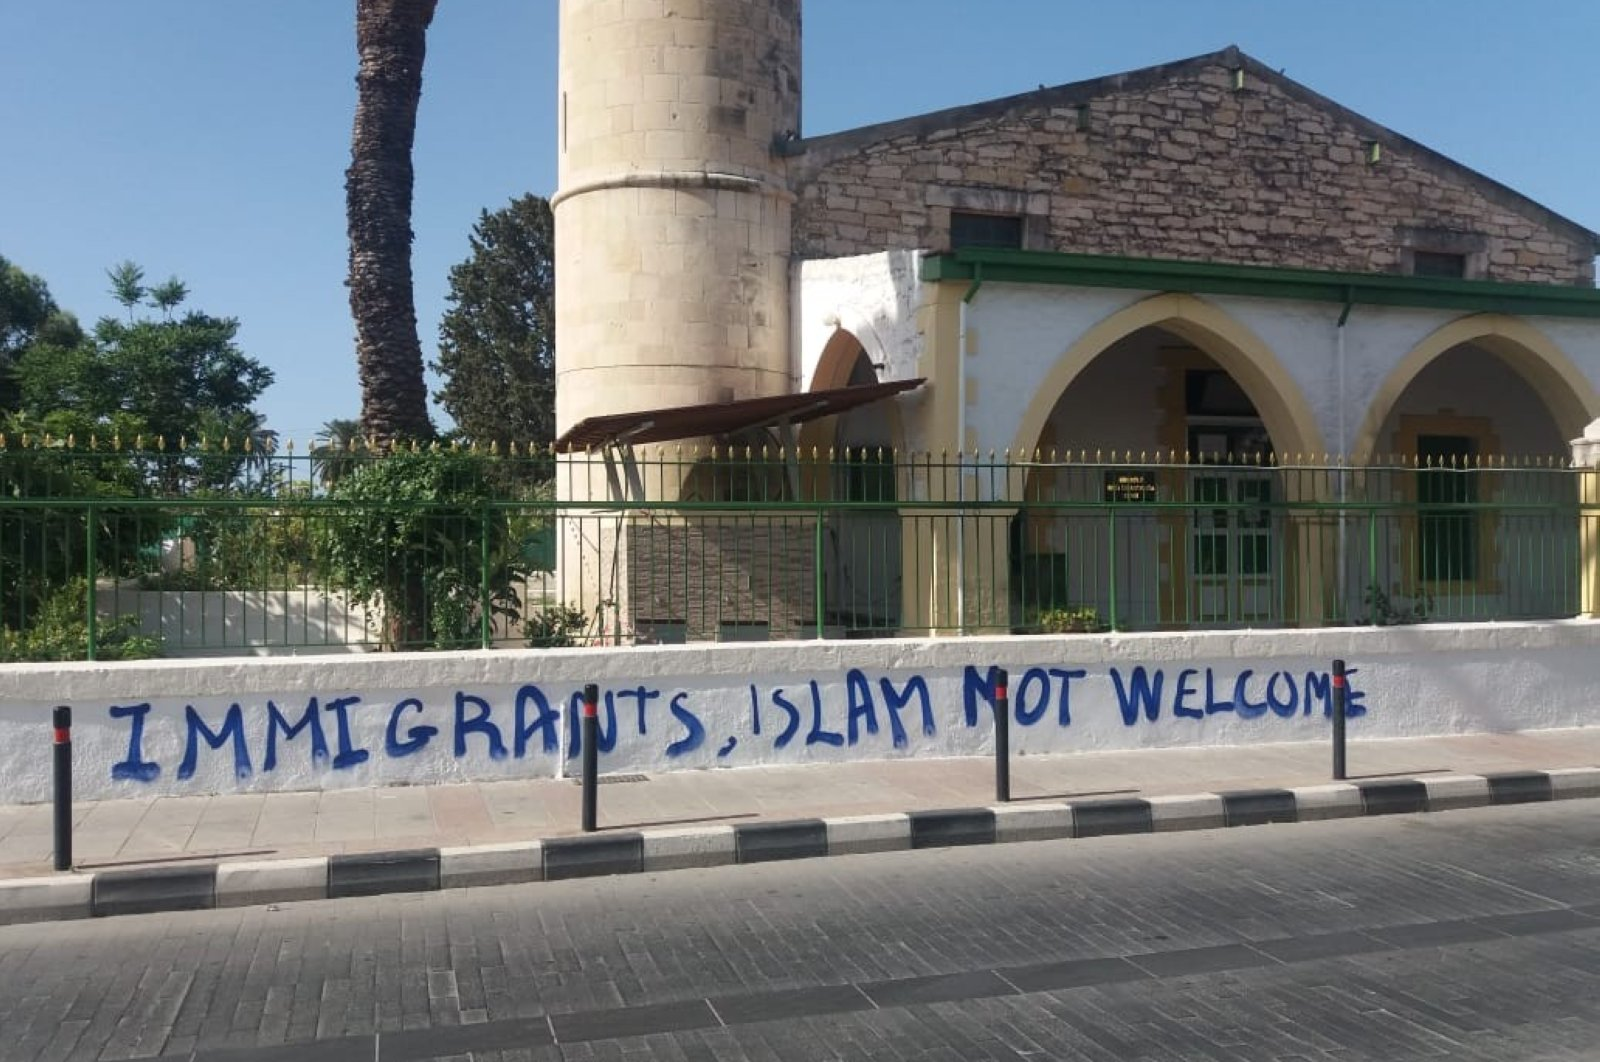 Vandalism on the walls of Köprülü Haci İbrahim Ağa Mosque in the Greek Cypriot-administered province of Limassol, June 1, 2020. (AA Photo)